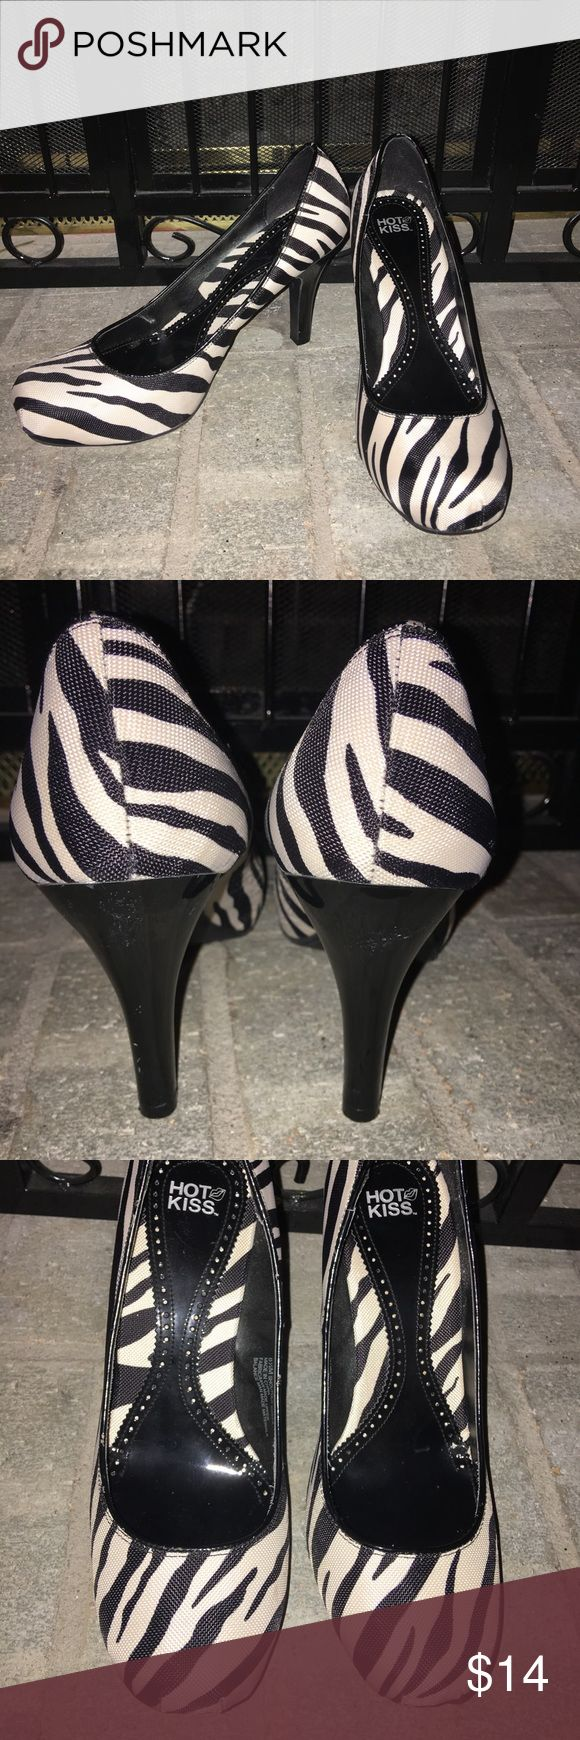 👠 CUTE!!! Zebra stripe heels!! Hot Kiss brand zebra heels!  Off white and black zebra stripes.  Super cute!! Worn only a few times.   Really good condition. Hot Kiss Shoes Heels